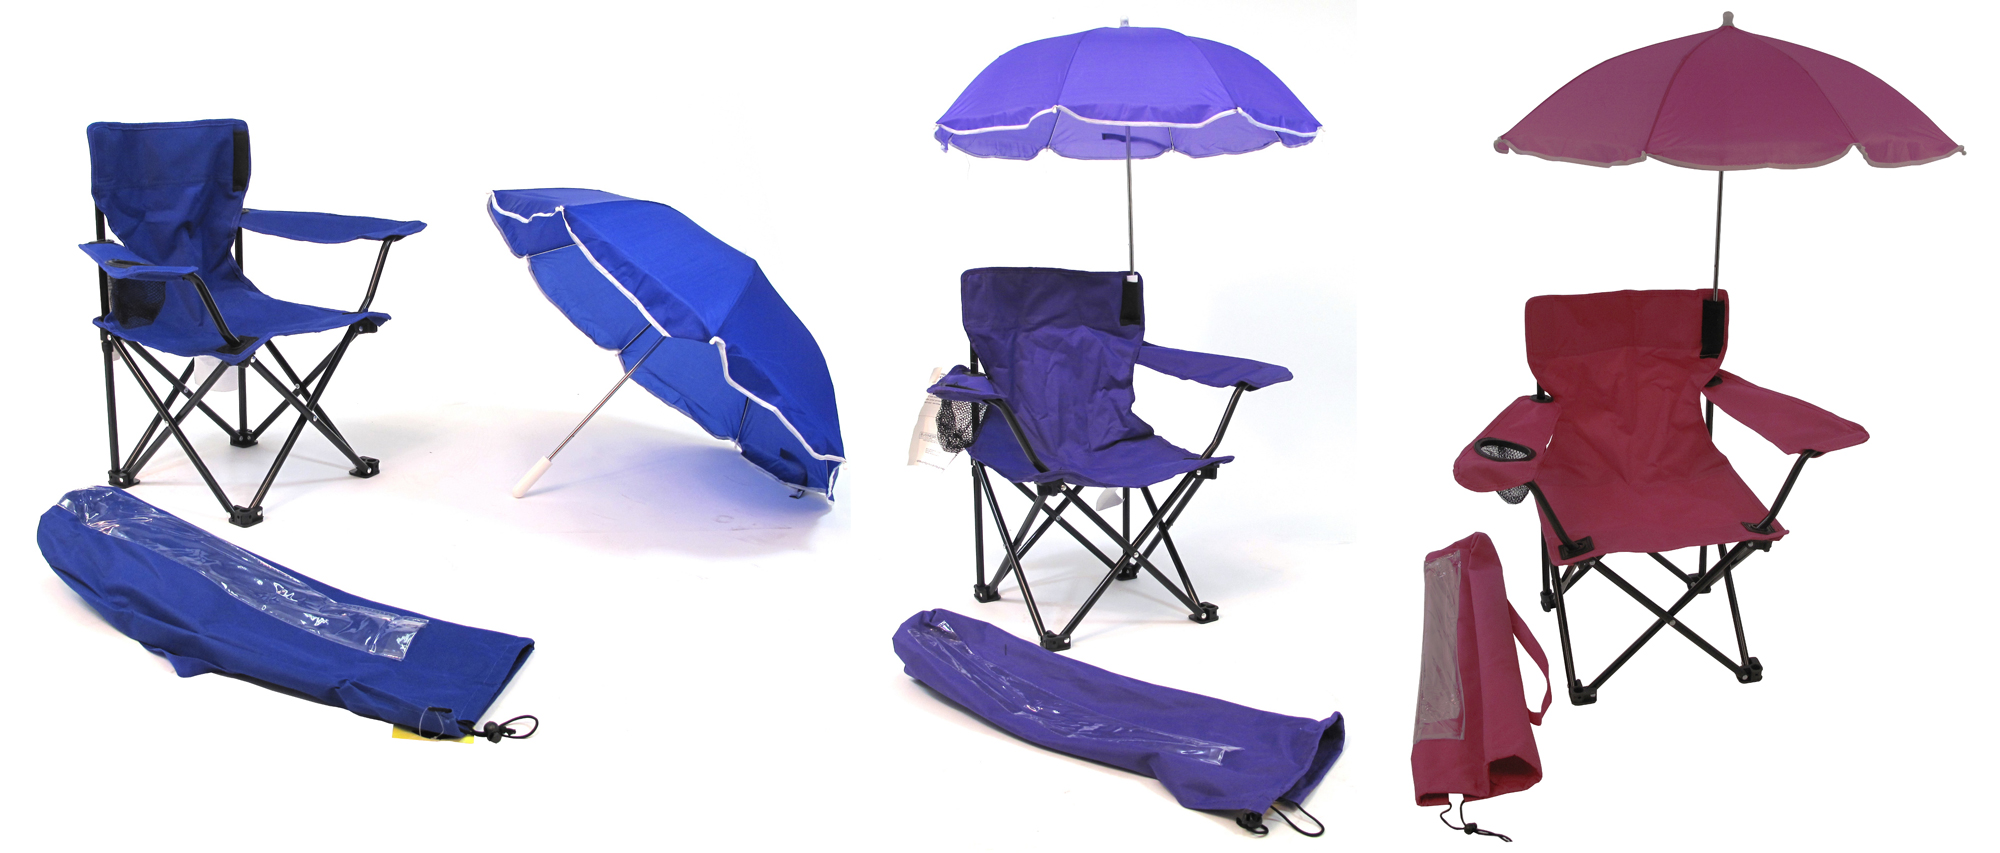 Beach Baby Kid's Camp CHAIRs w/ Carry Umbrella & Matching Tote Bags - Choose Your Color(s)